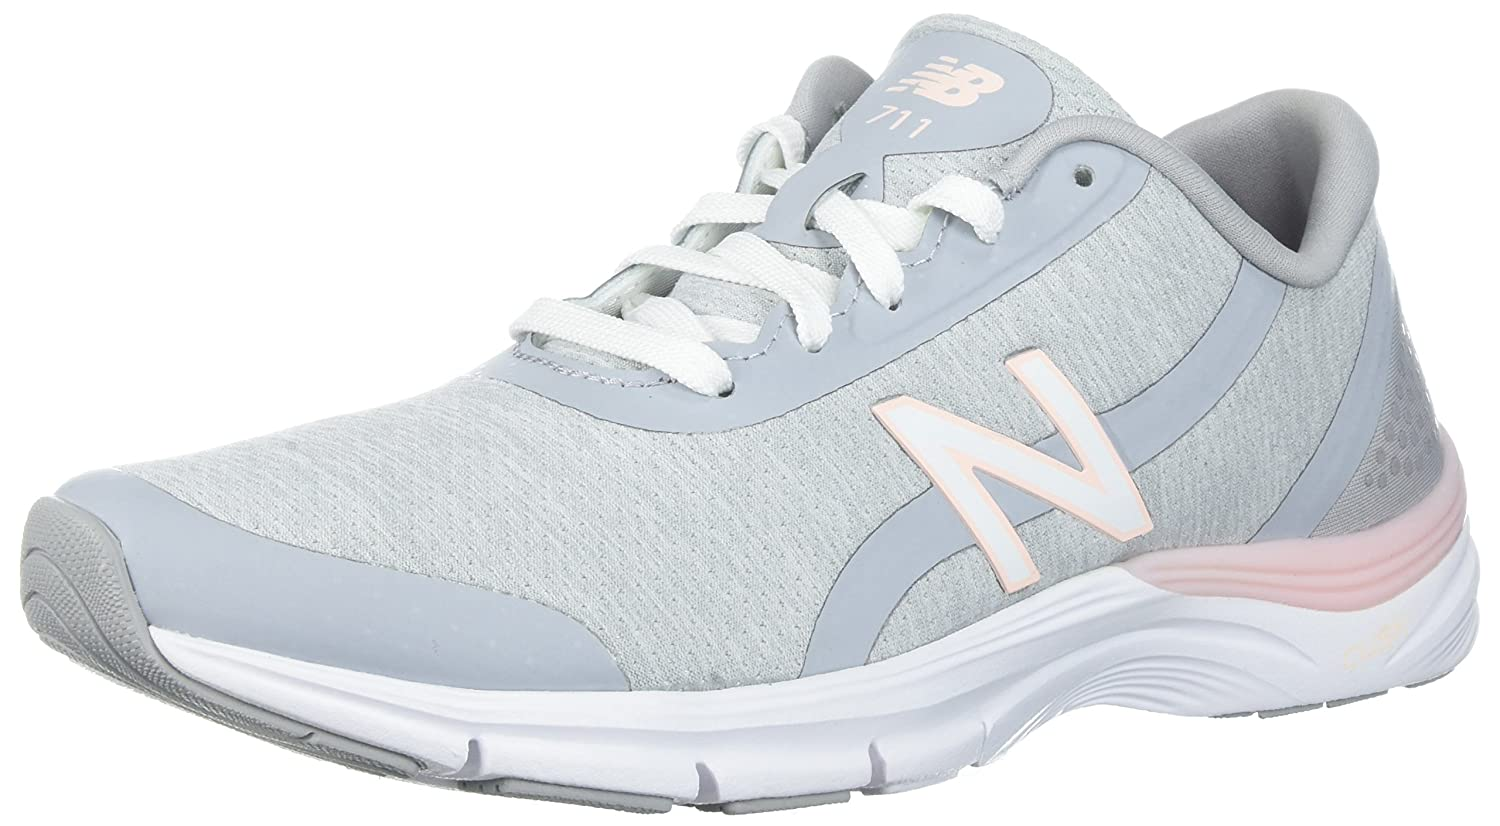 New Balance Women's 711v3 Cross Trainer B06XSC87P8 7.5 B(M) US|White